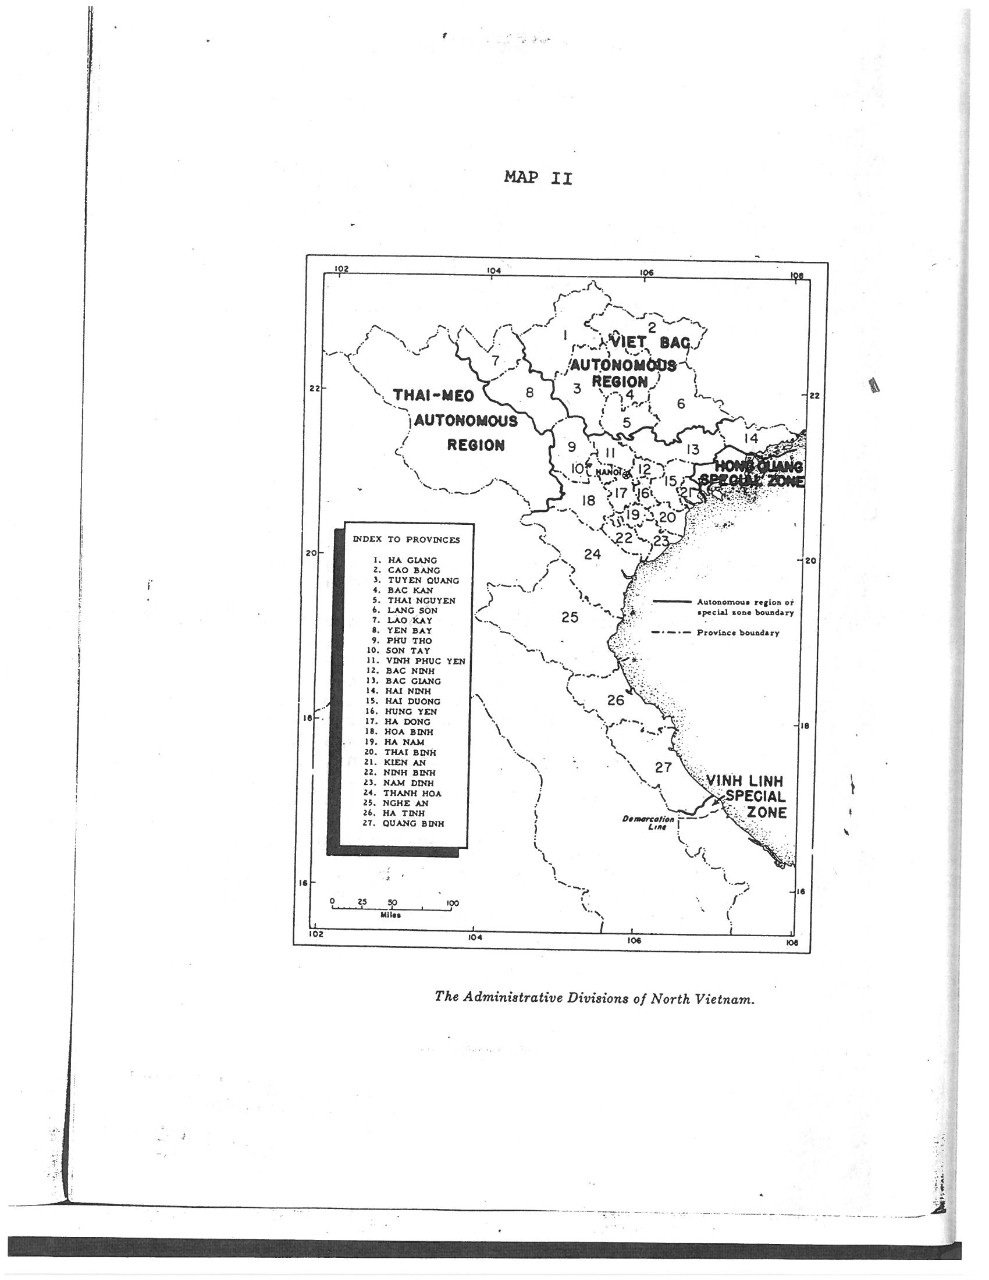 The Administrative Divisions of North Vietnam